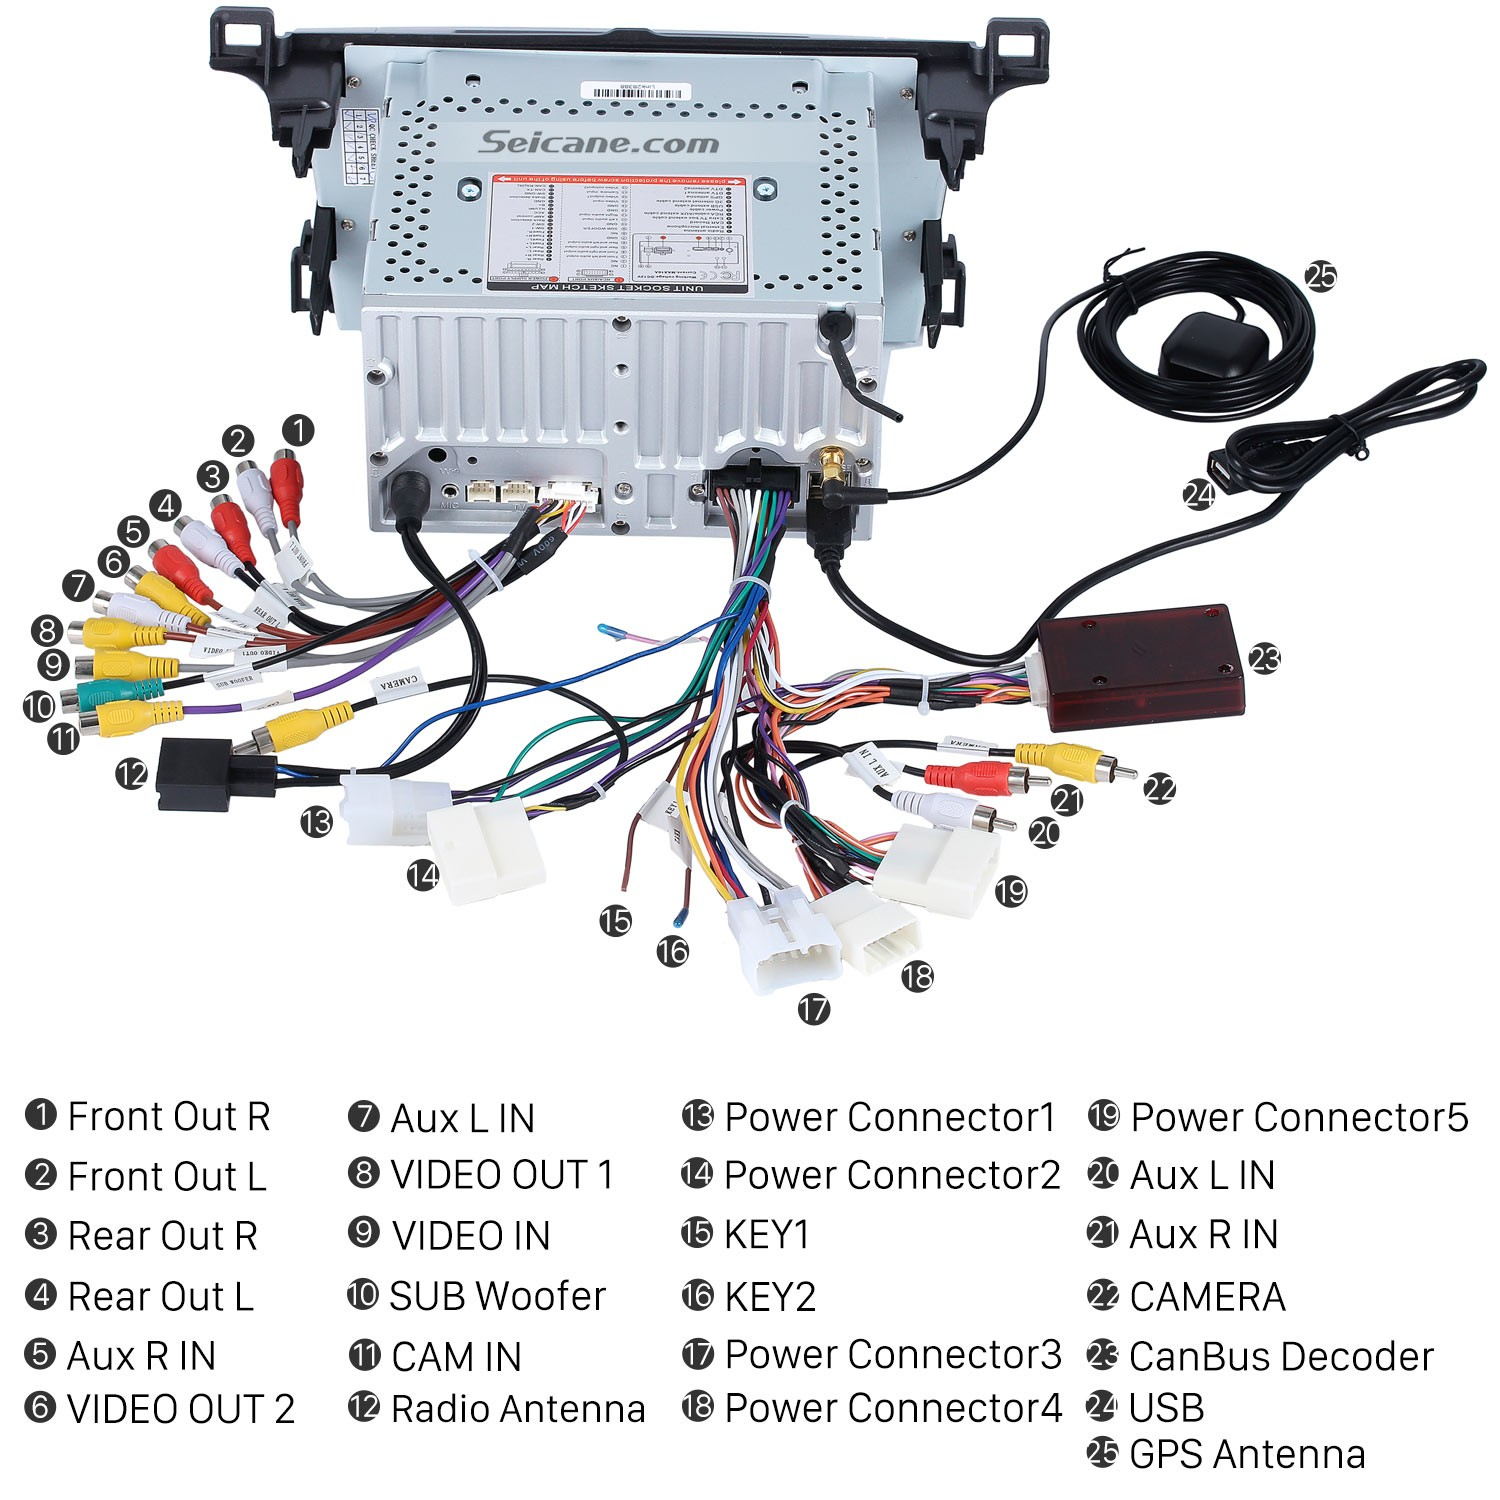 hight resolution of 2013 rav4 wiring diagram wiring diagram2006 toyota rav4 wiring harness wiring diagram g8 2013